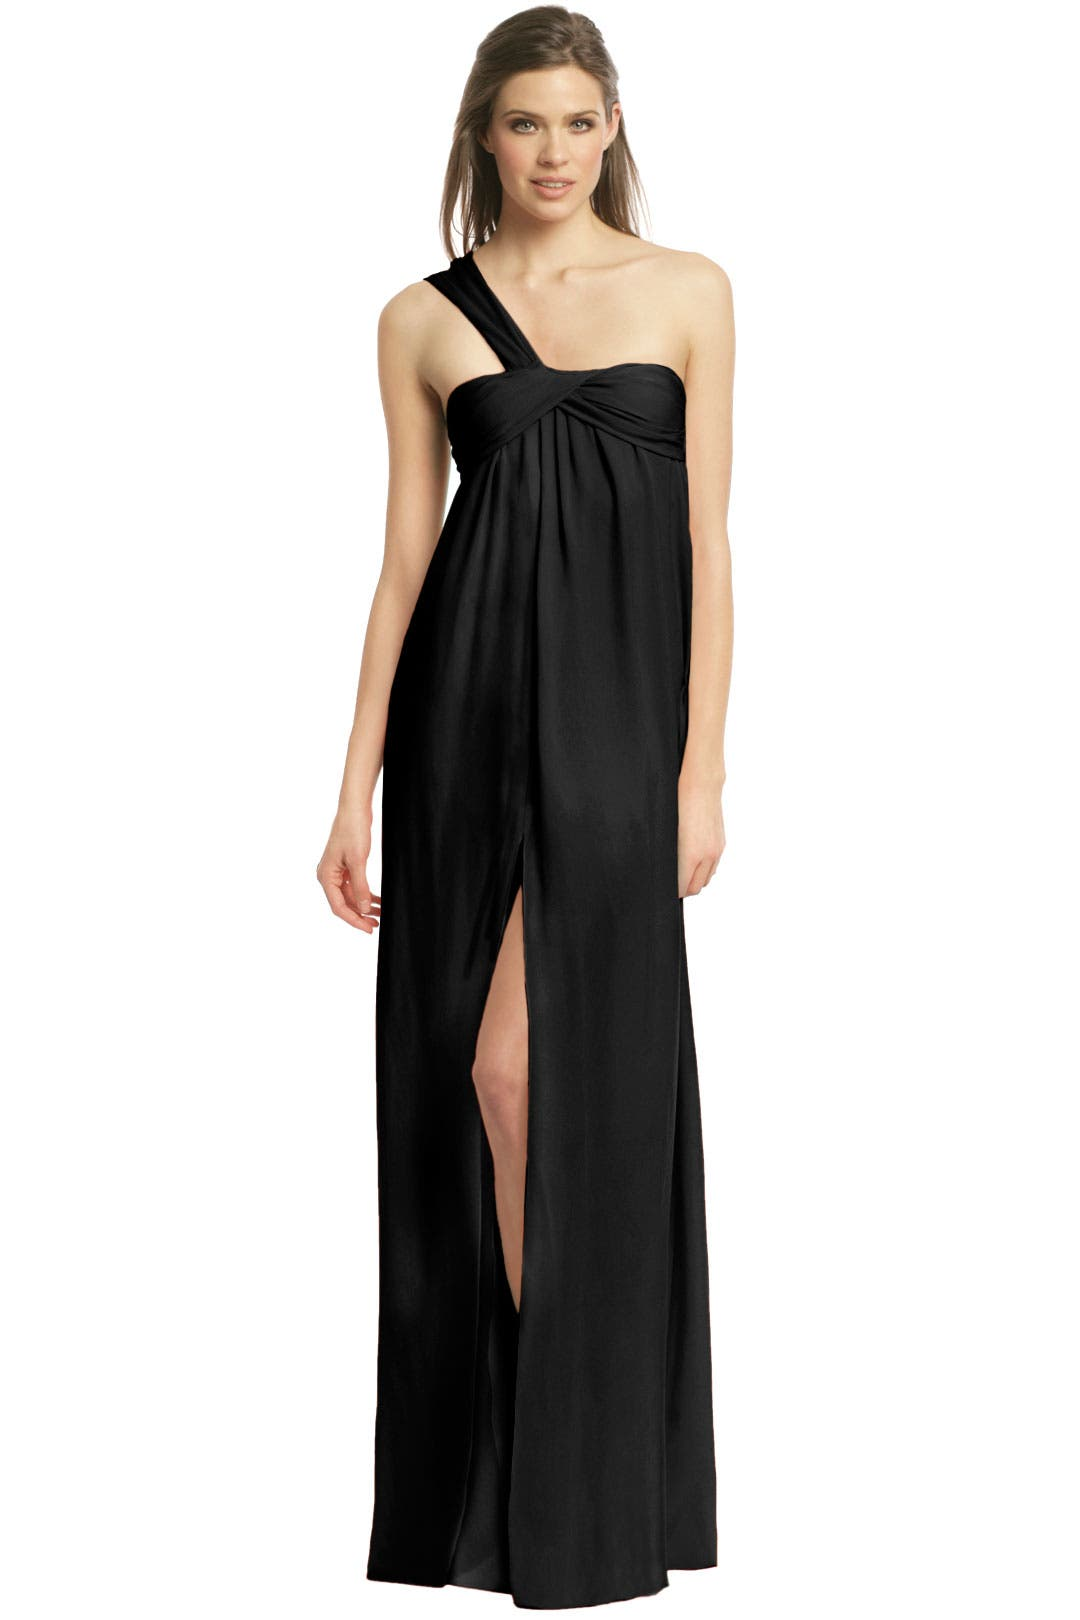 Take A Look At Me Now Gown by Halston Heritage